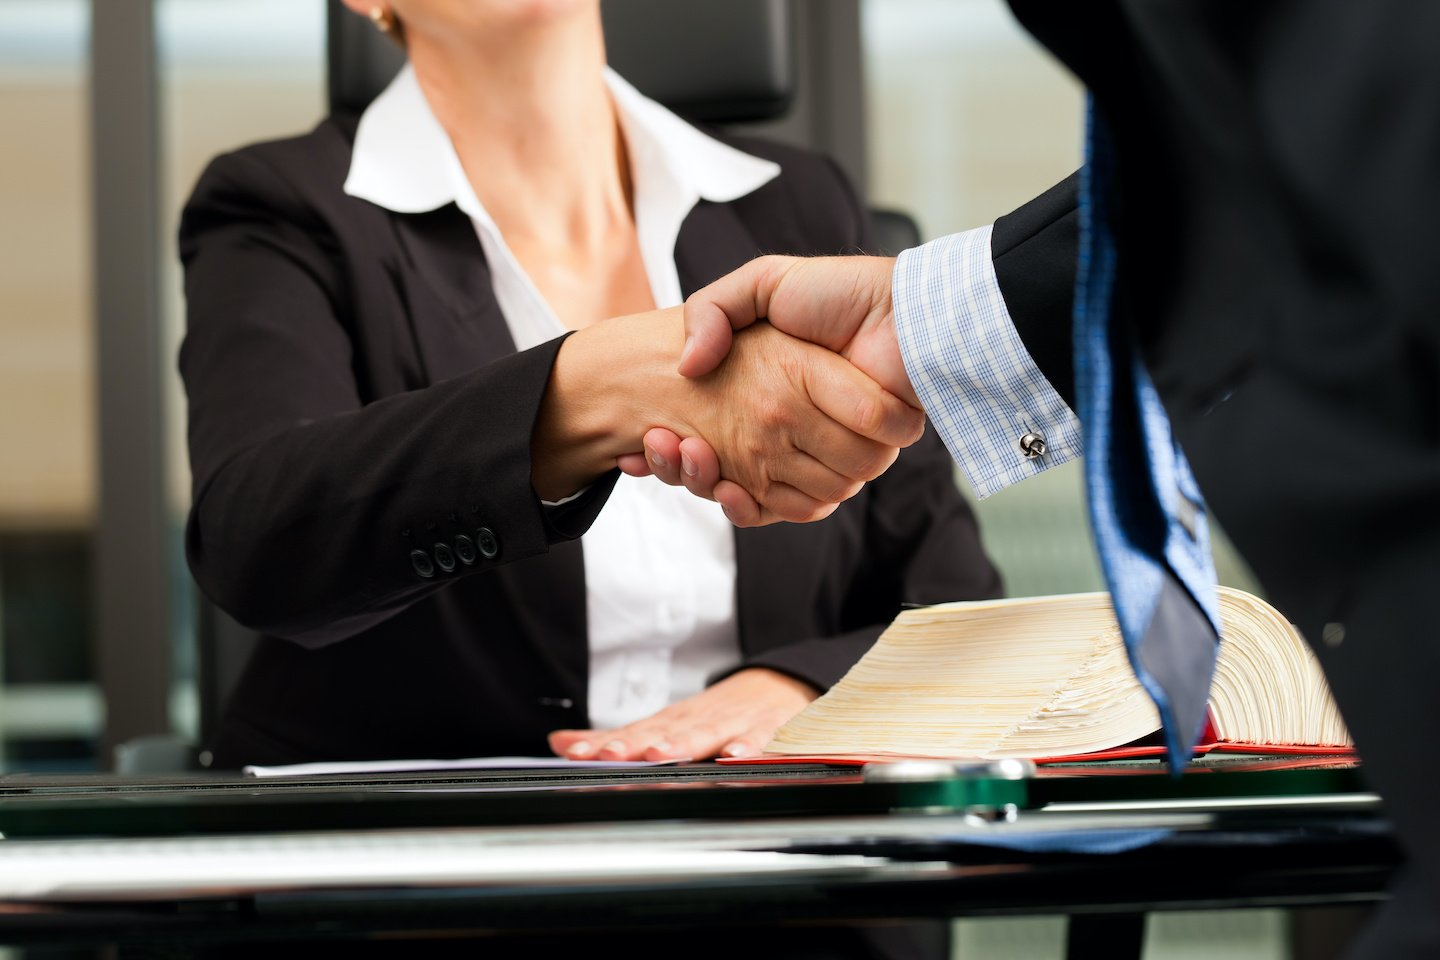 Female Lawyer Shaking Hands